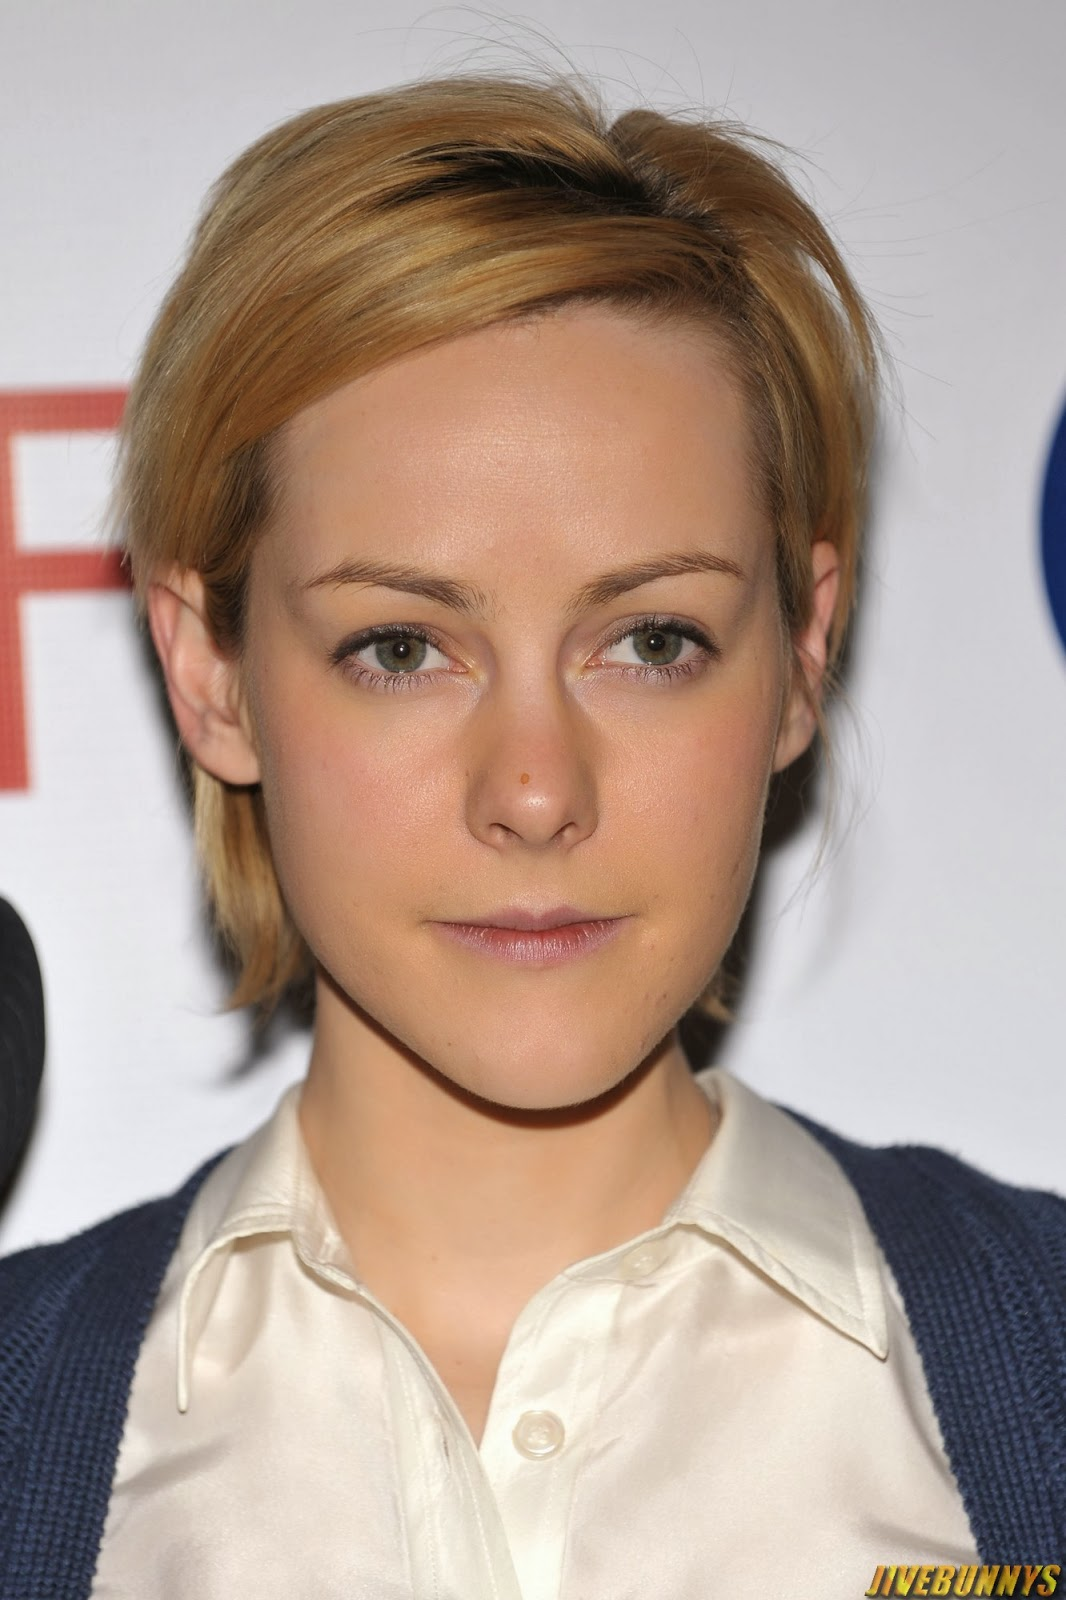 Related Pictures carreck celebrity jena malone pictures